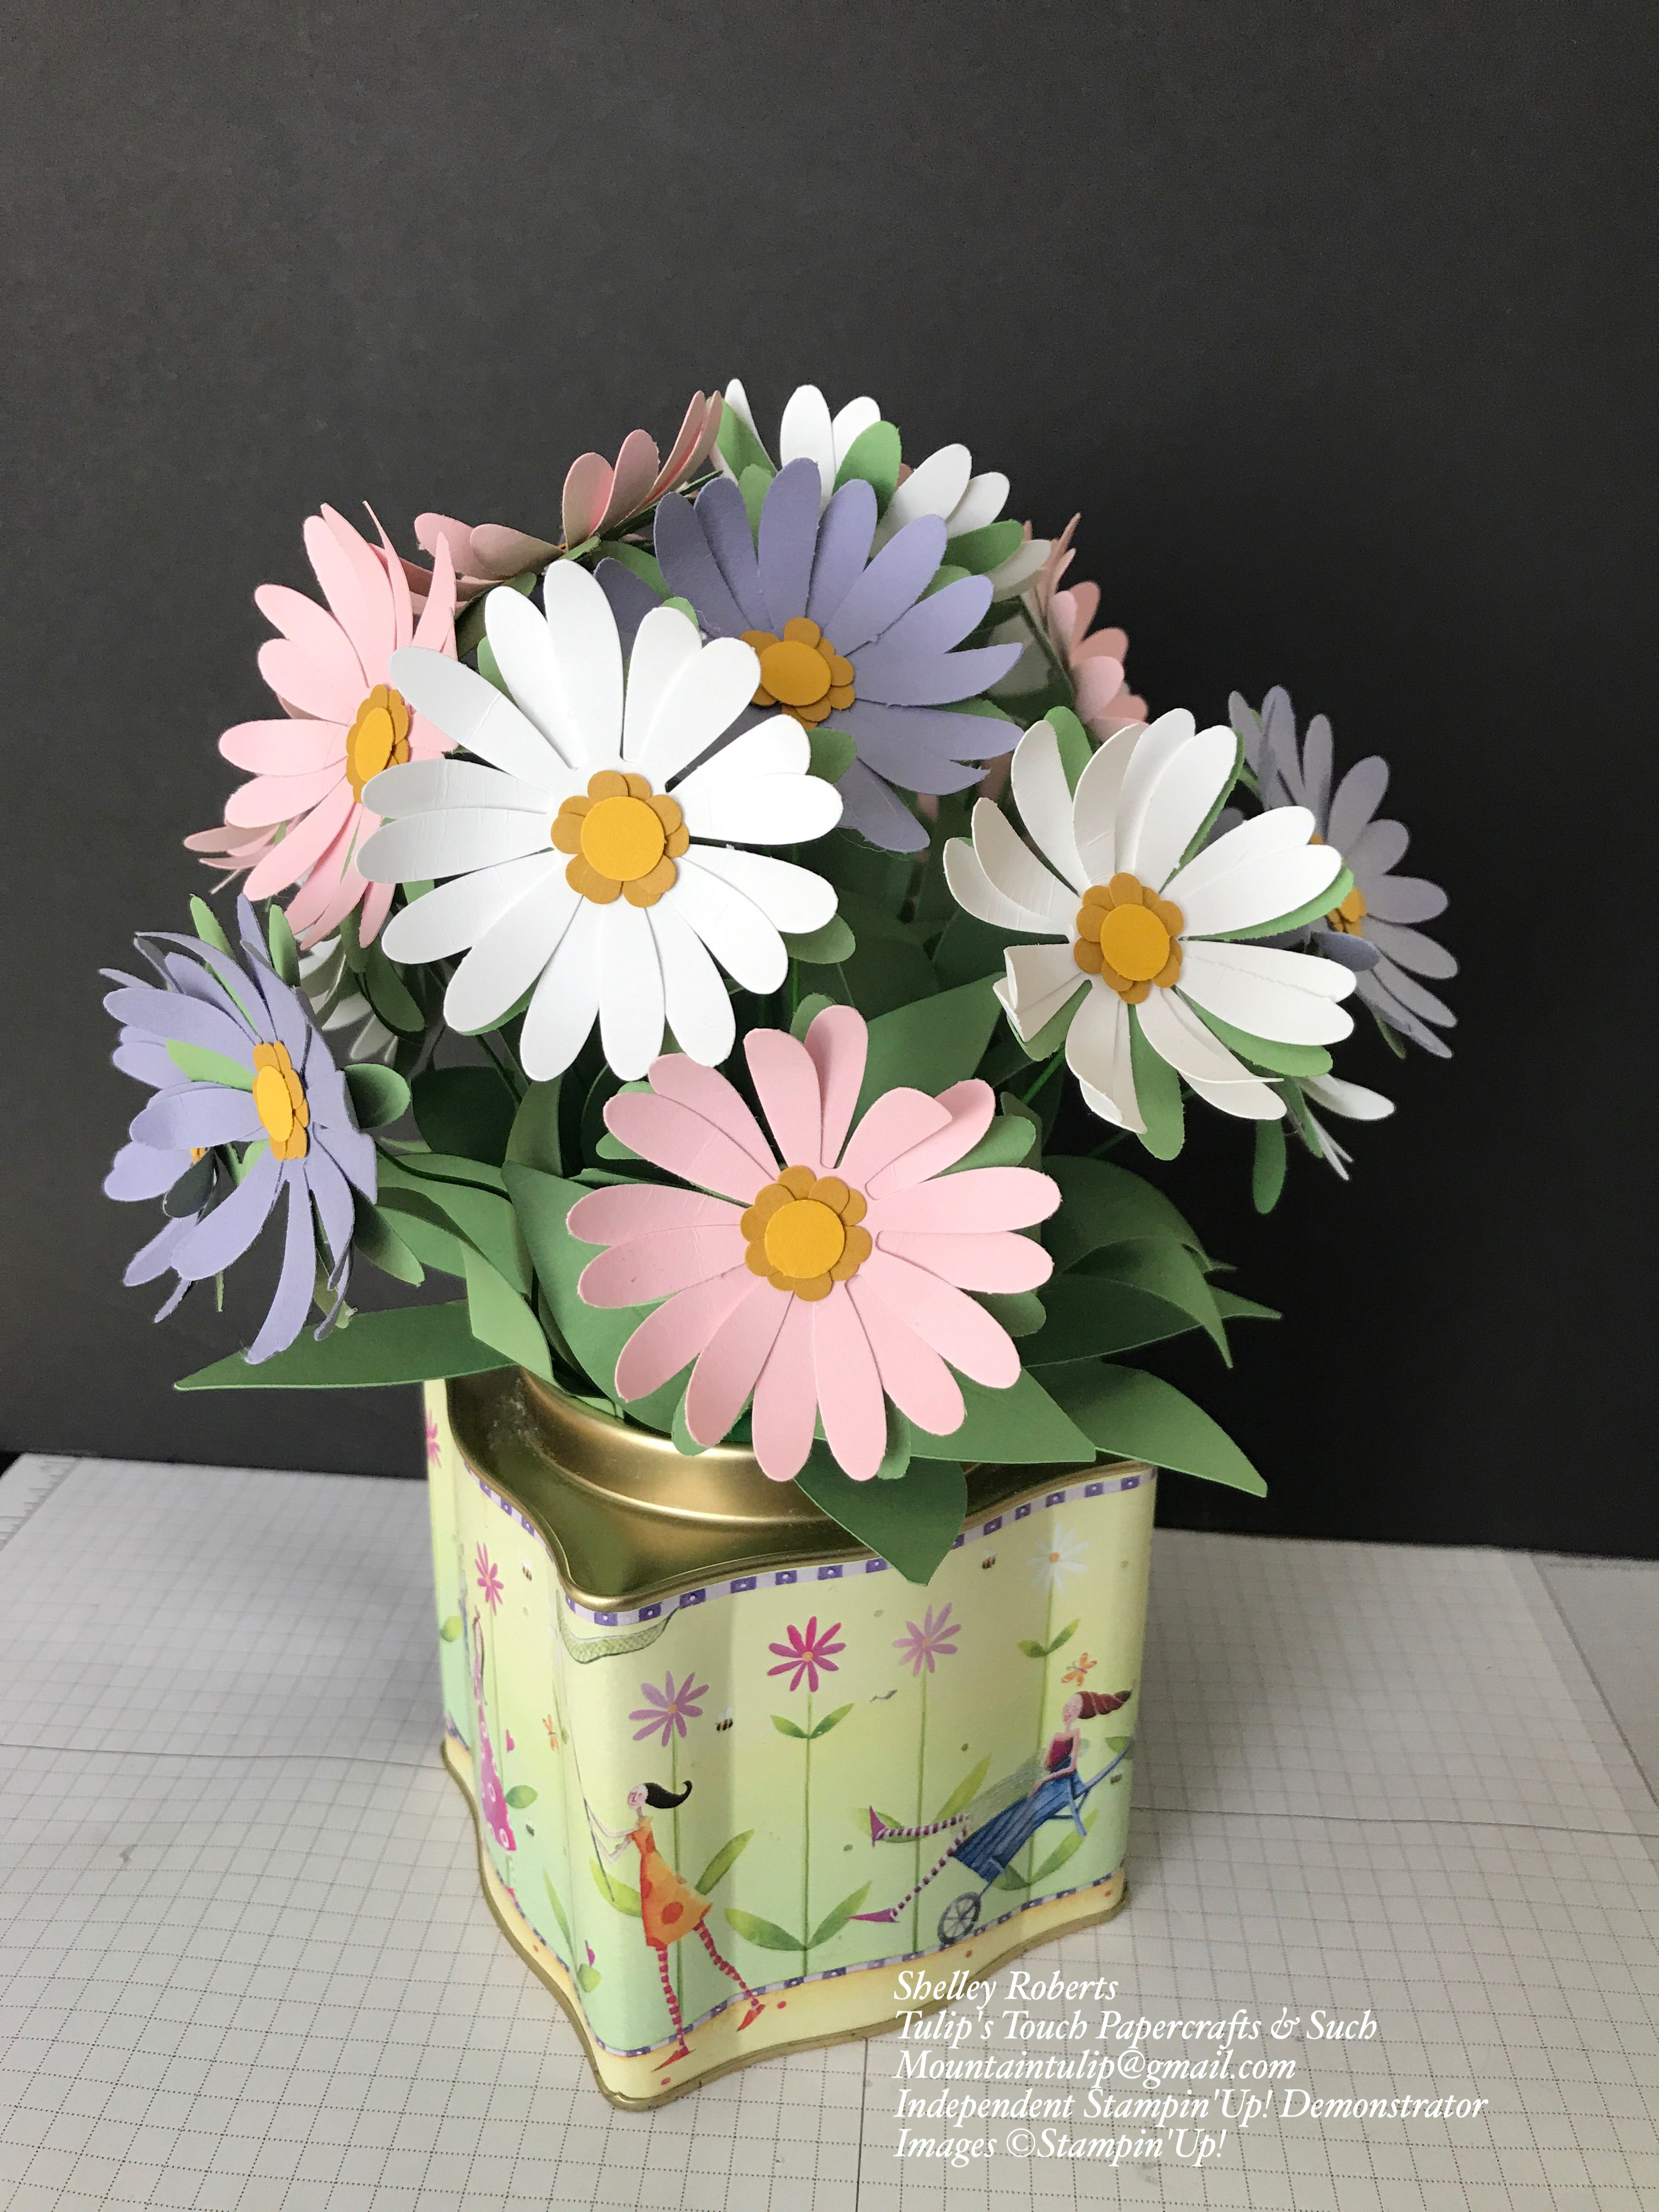 daisy flowers made with heavy card stock and stampin'up